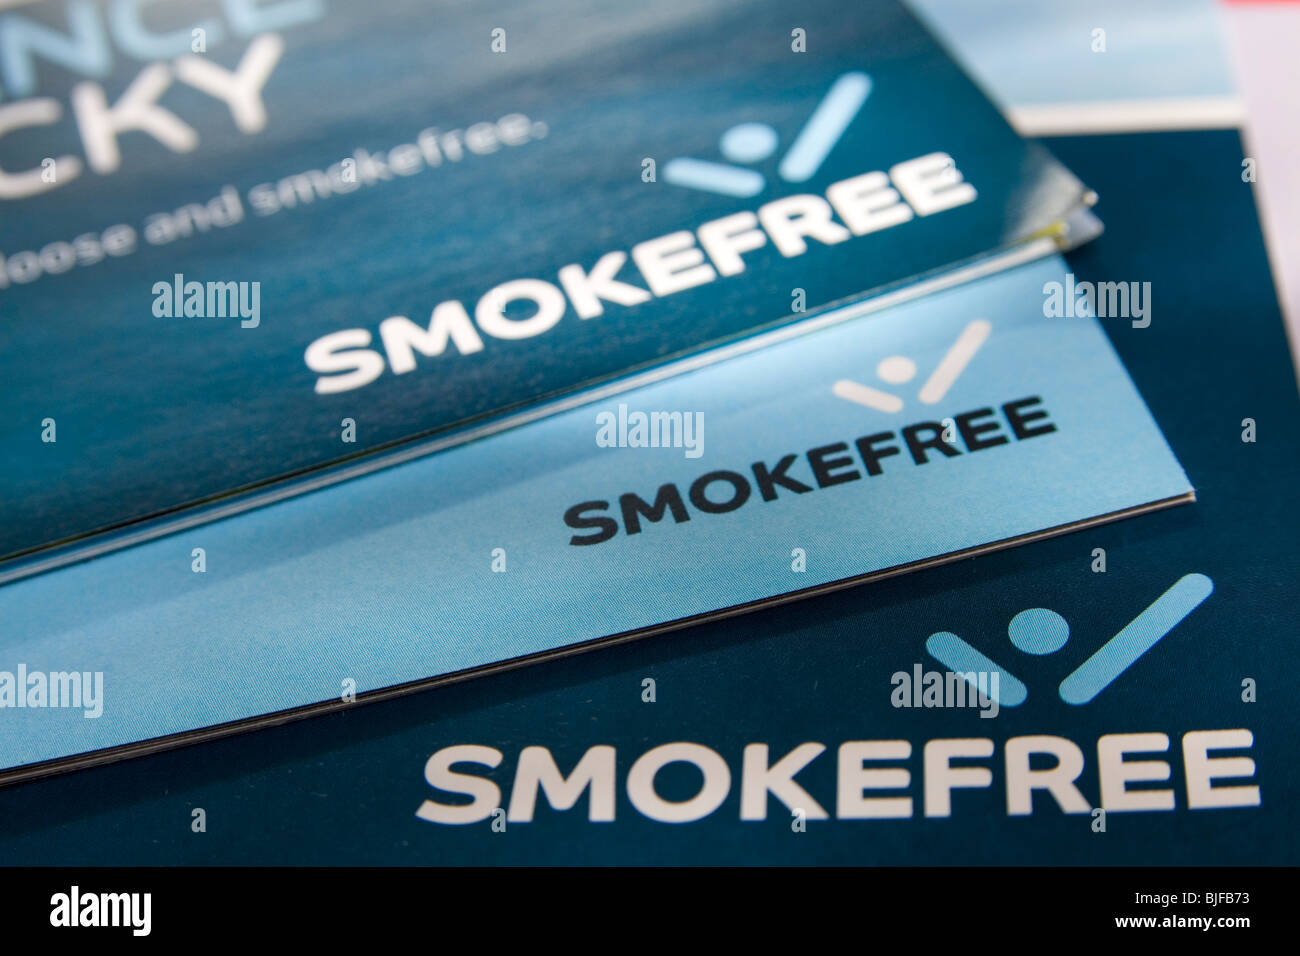 NHS Smoke Free Campaign booklets - Stock Image